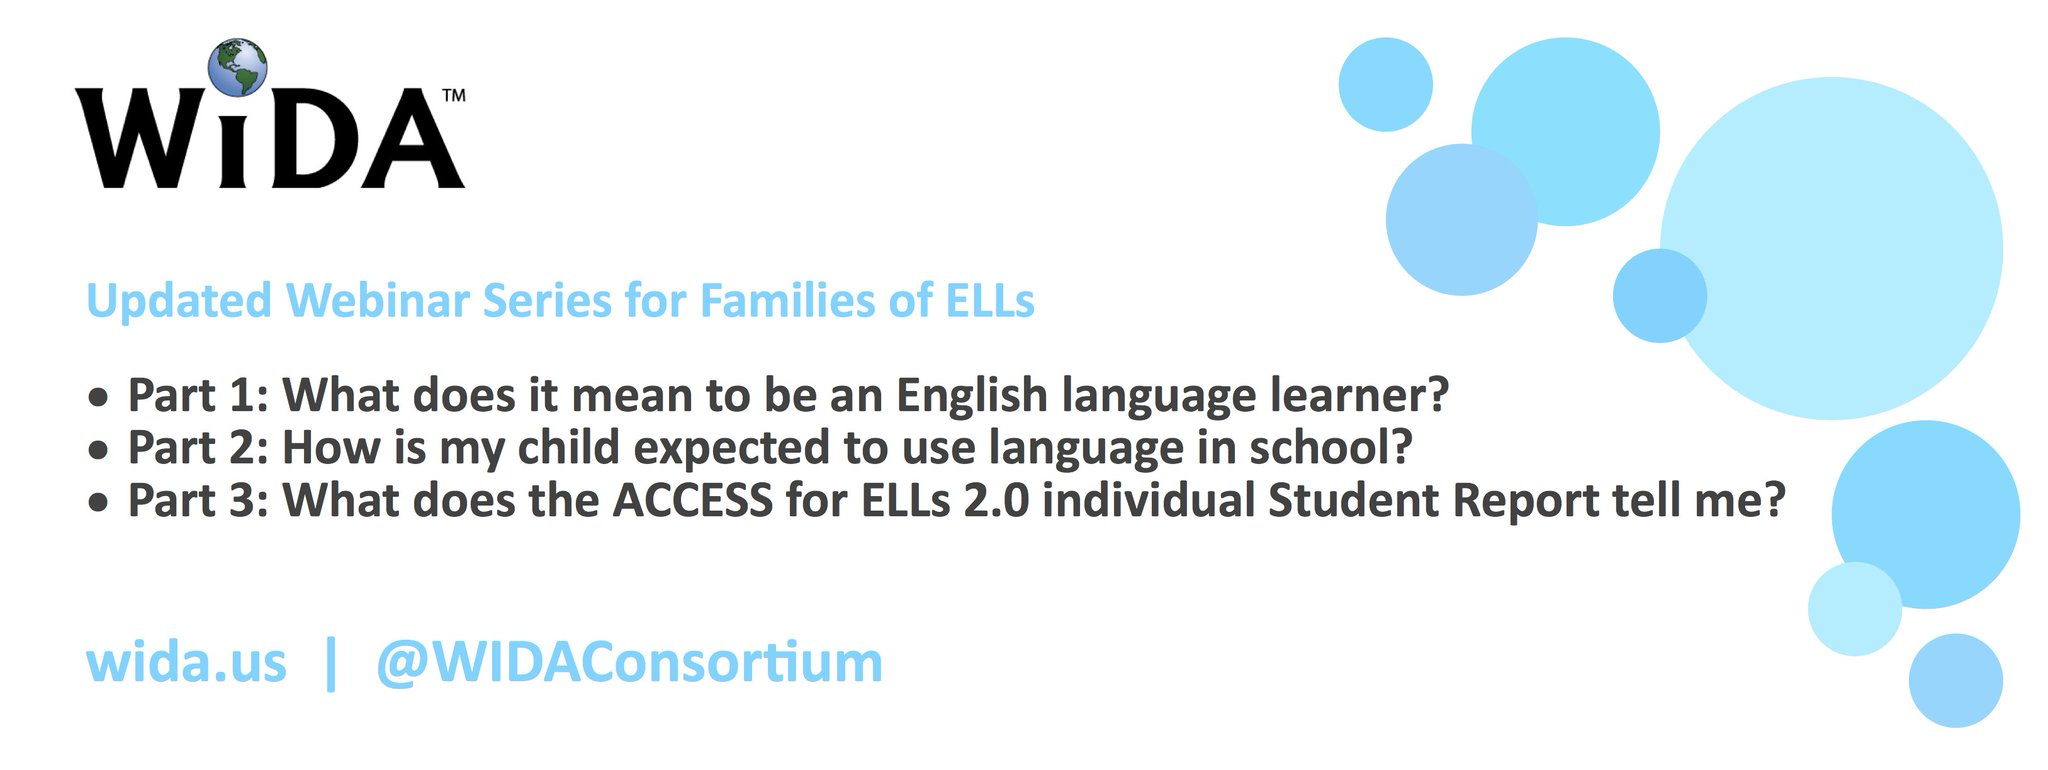 #WIDA has published 3 new #webinars to help equip families to better engage in their #ELLs #education. Find them at https://t.co/QzRD5mVk5u https://t.co/dOxGfO210X